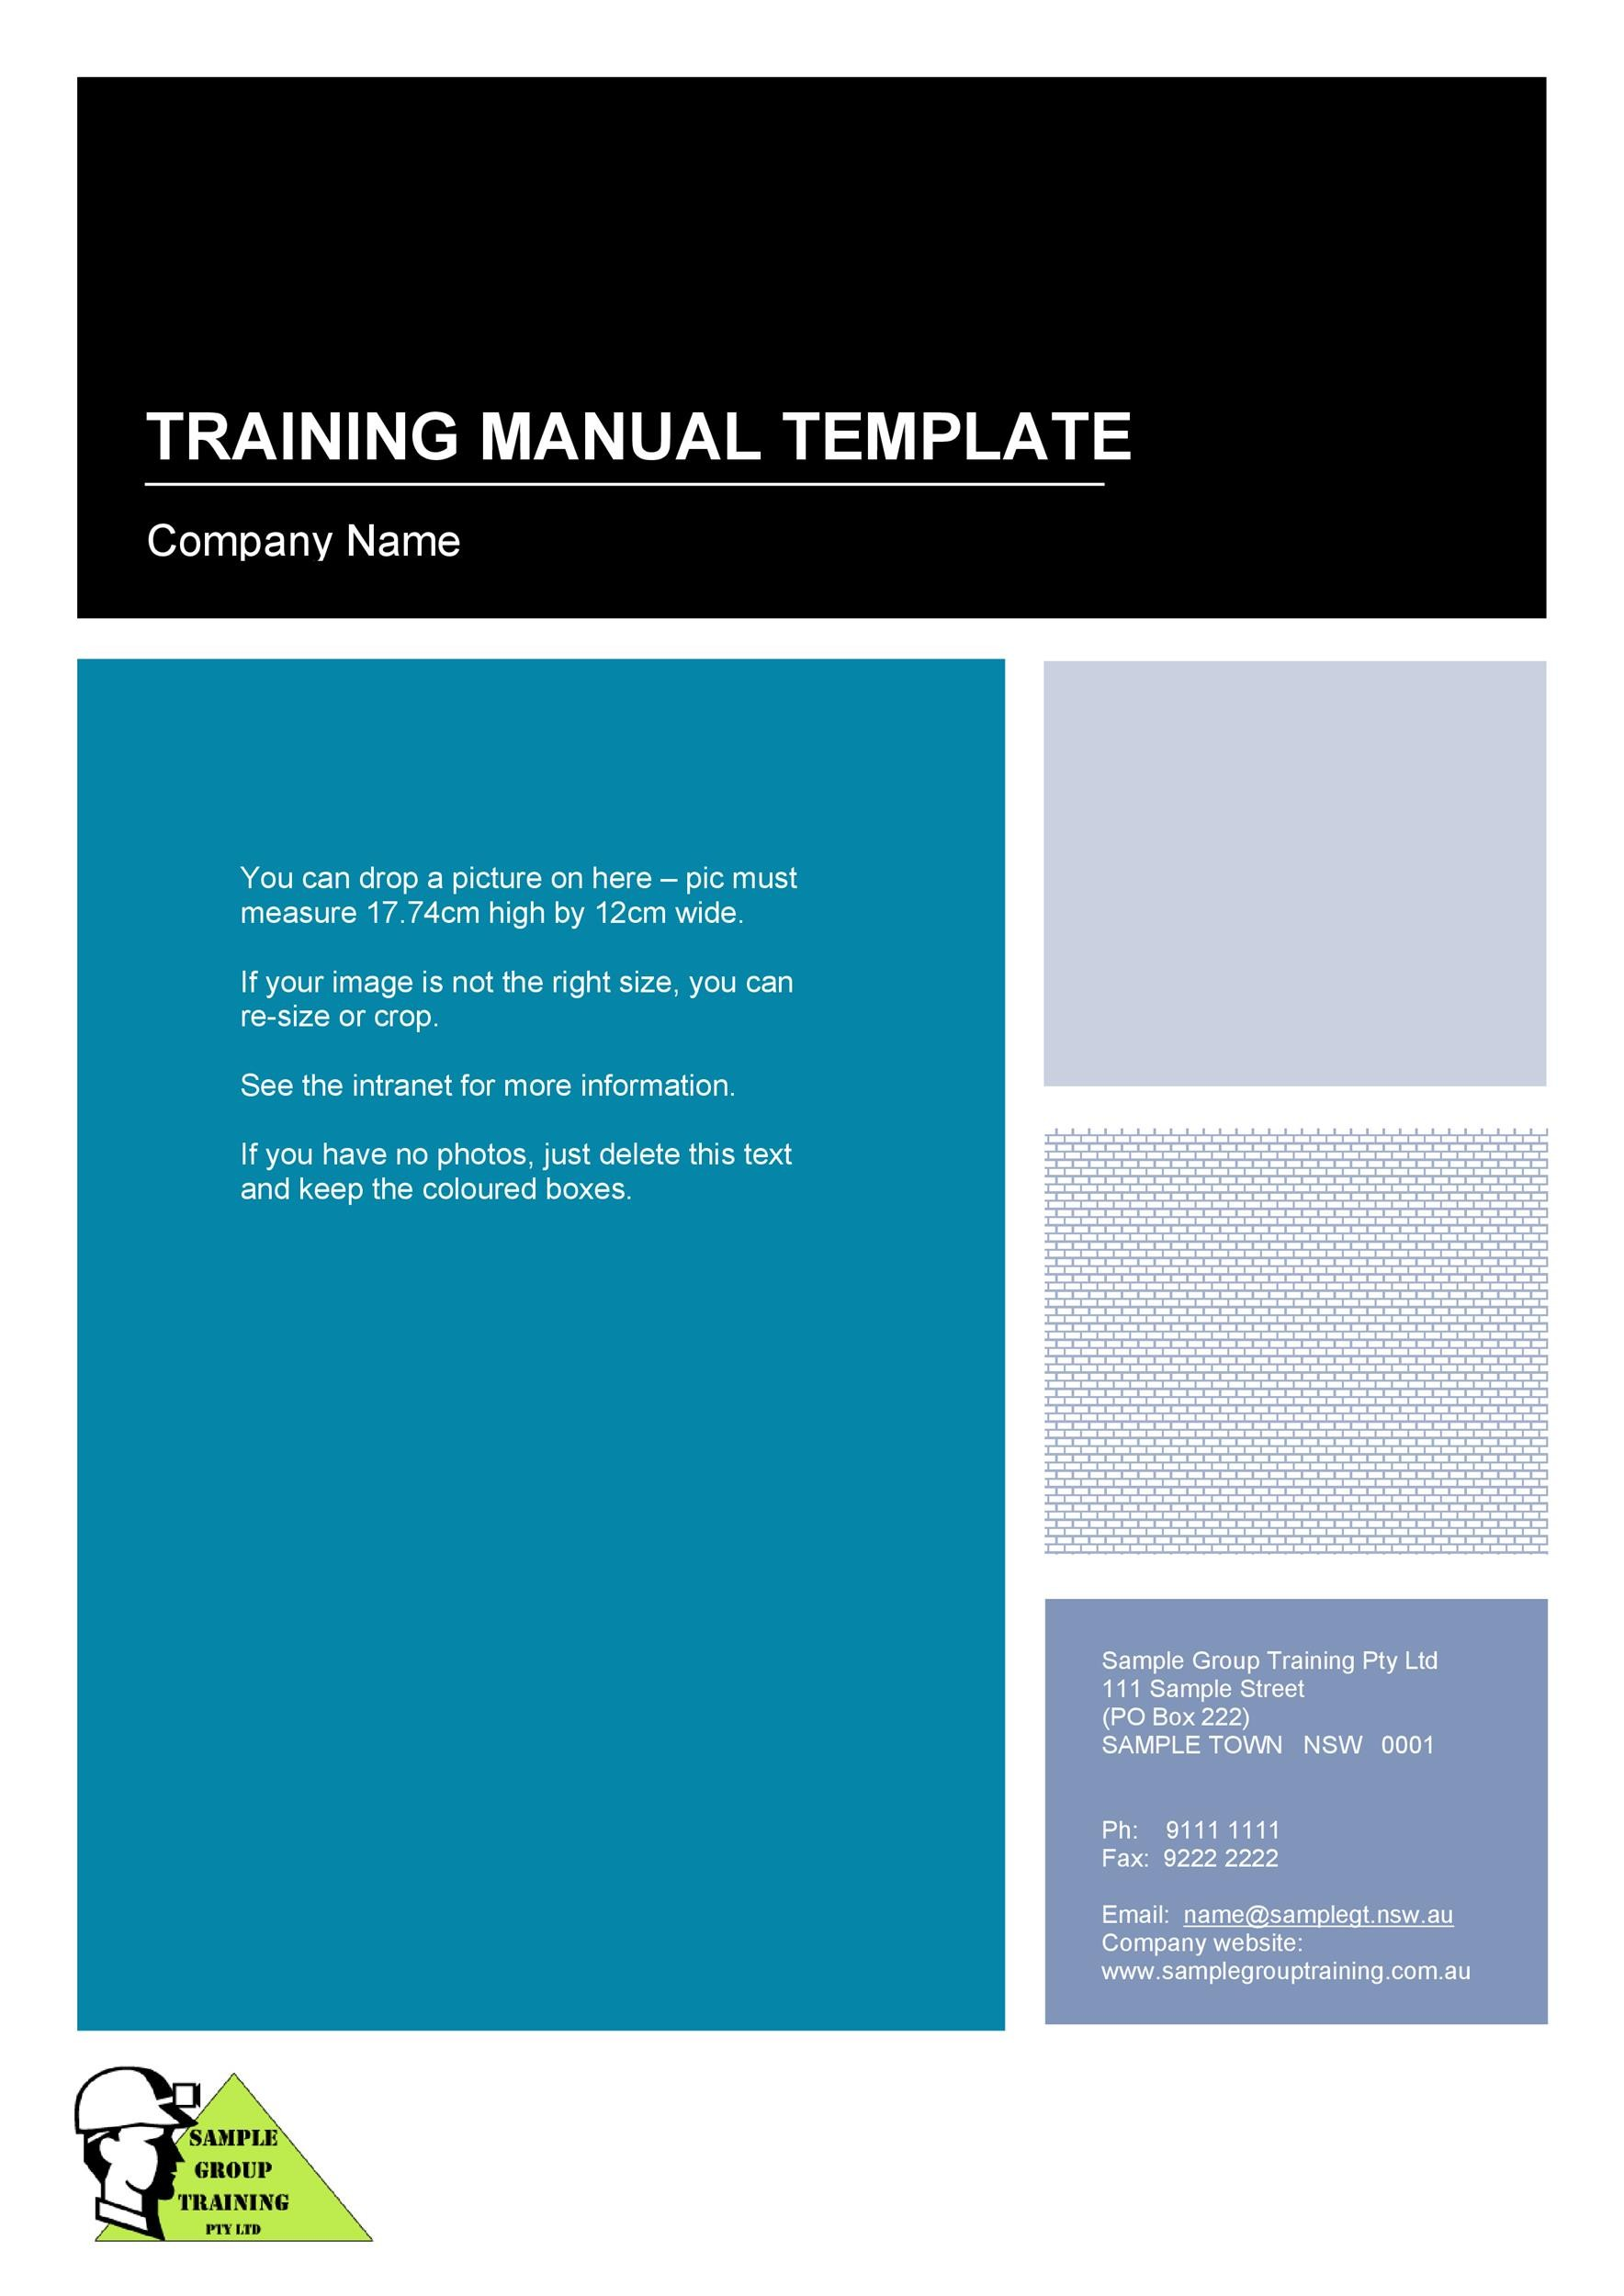 Ms word training manual template troubleshooting guide template 5 ways to improve style maxwellsz